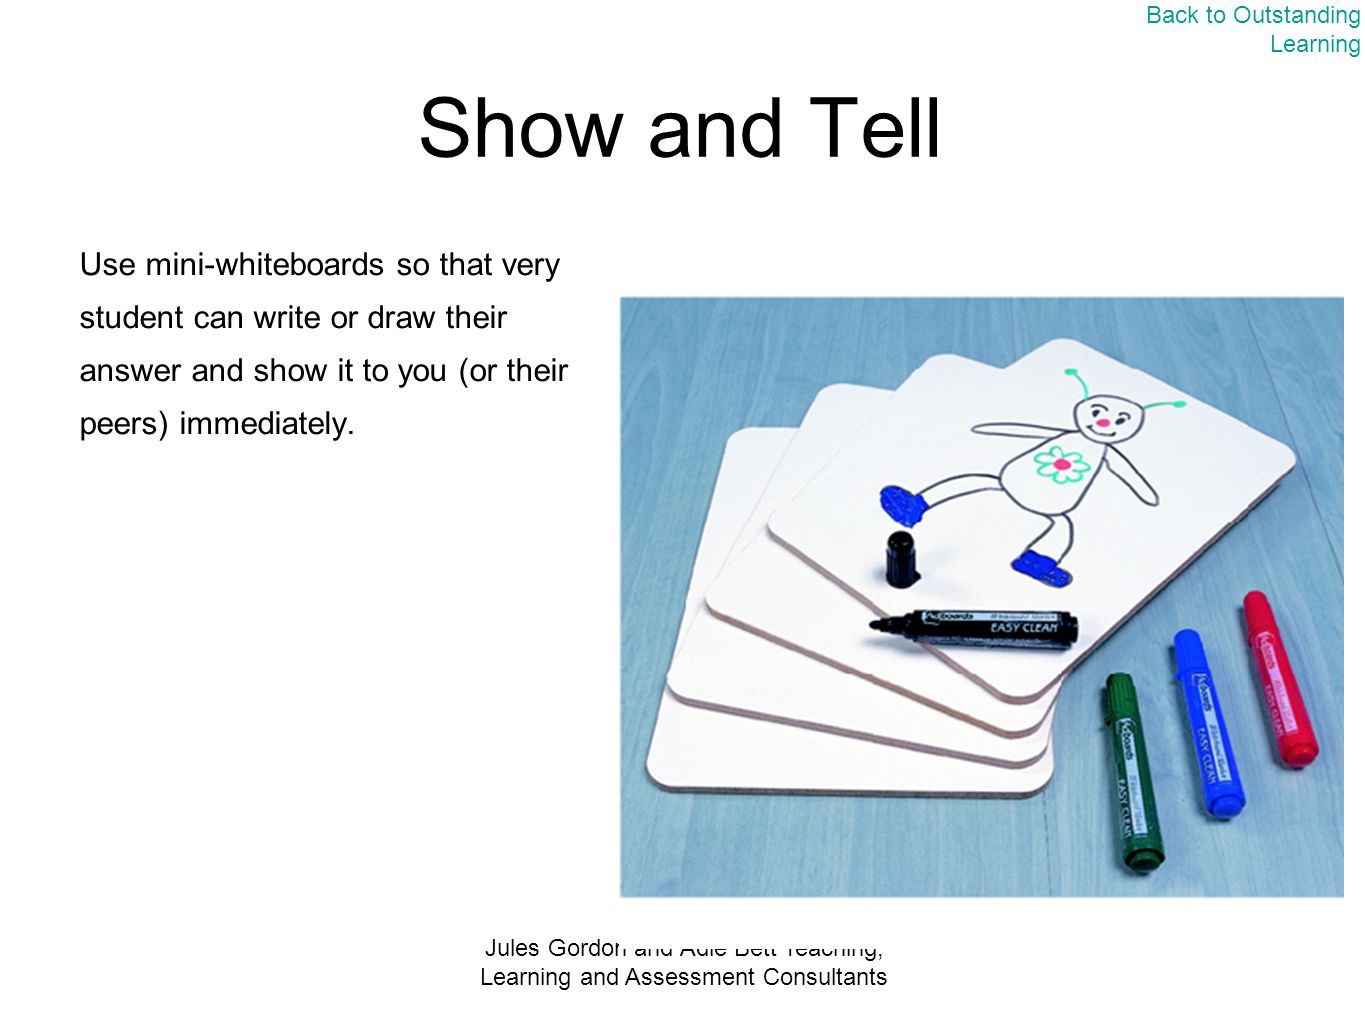 Jules Gordon and Adie Bett Teaching, Learning and Assessment Consultants Show and Tell Use mini-whiteboards so that very student can write or draw their answer and show it to you (or their peers) immediately.